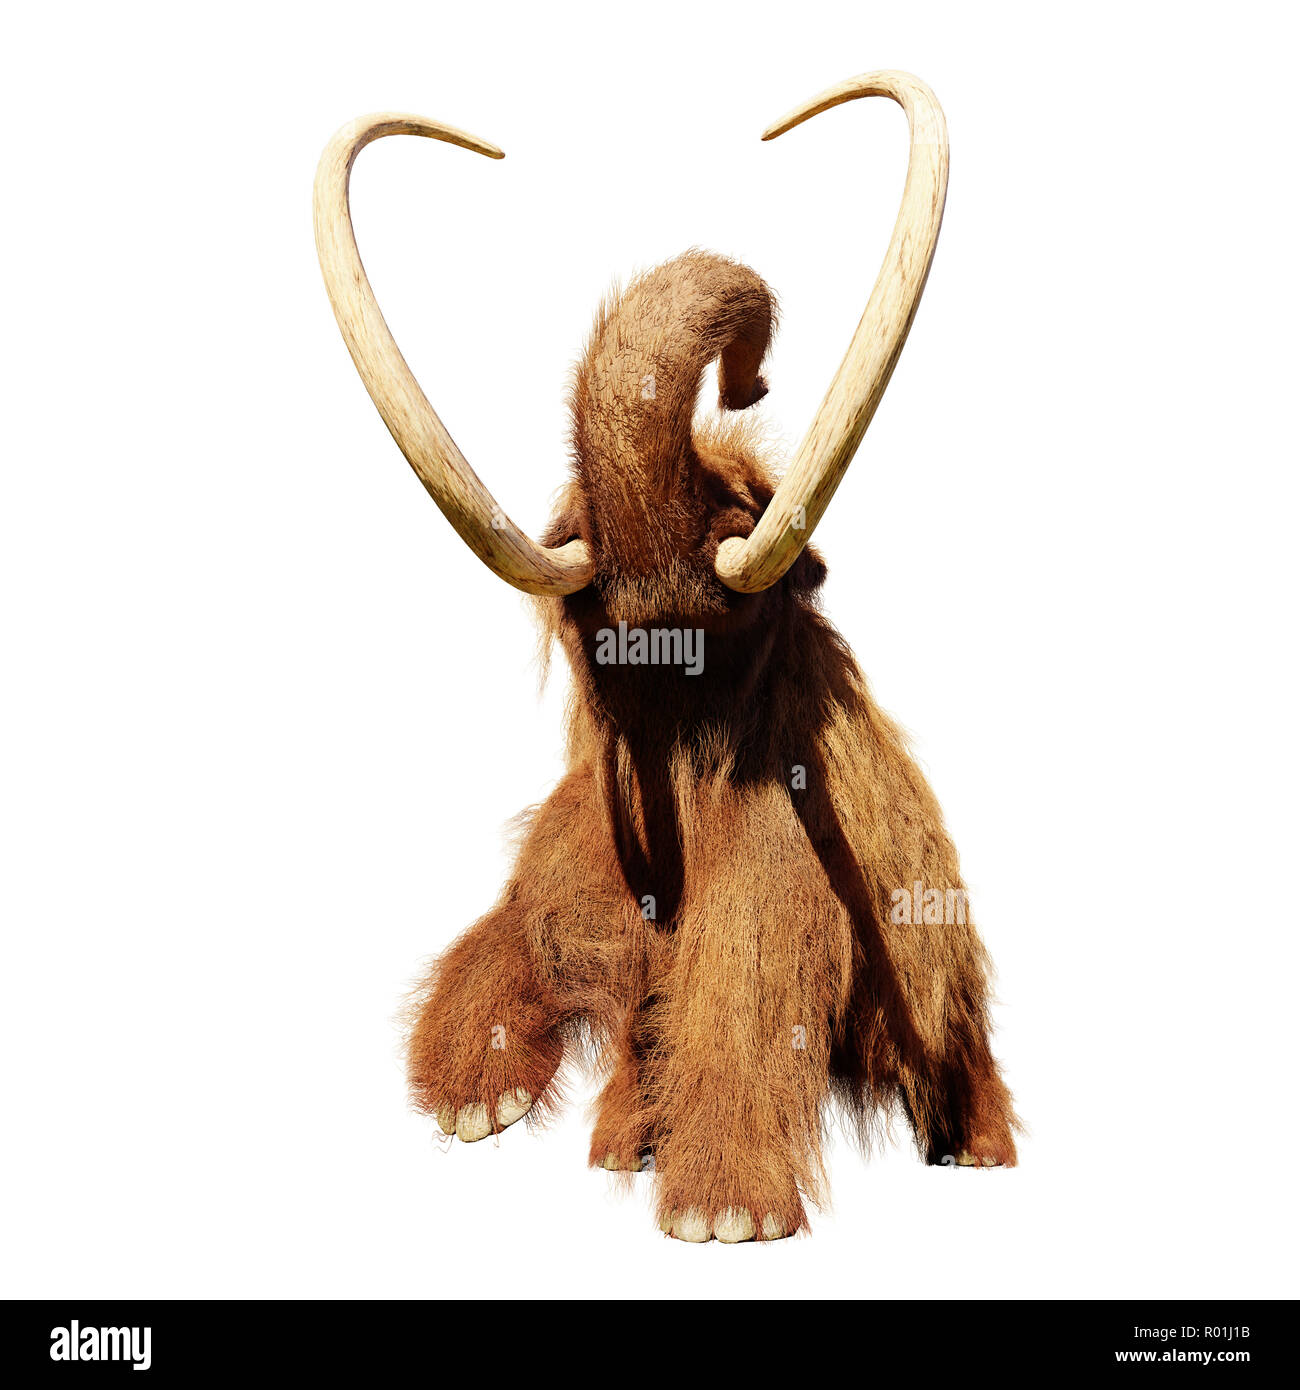 Ice Age Animal Cut Out Stock Images & Pictures - Alamy